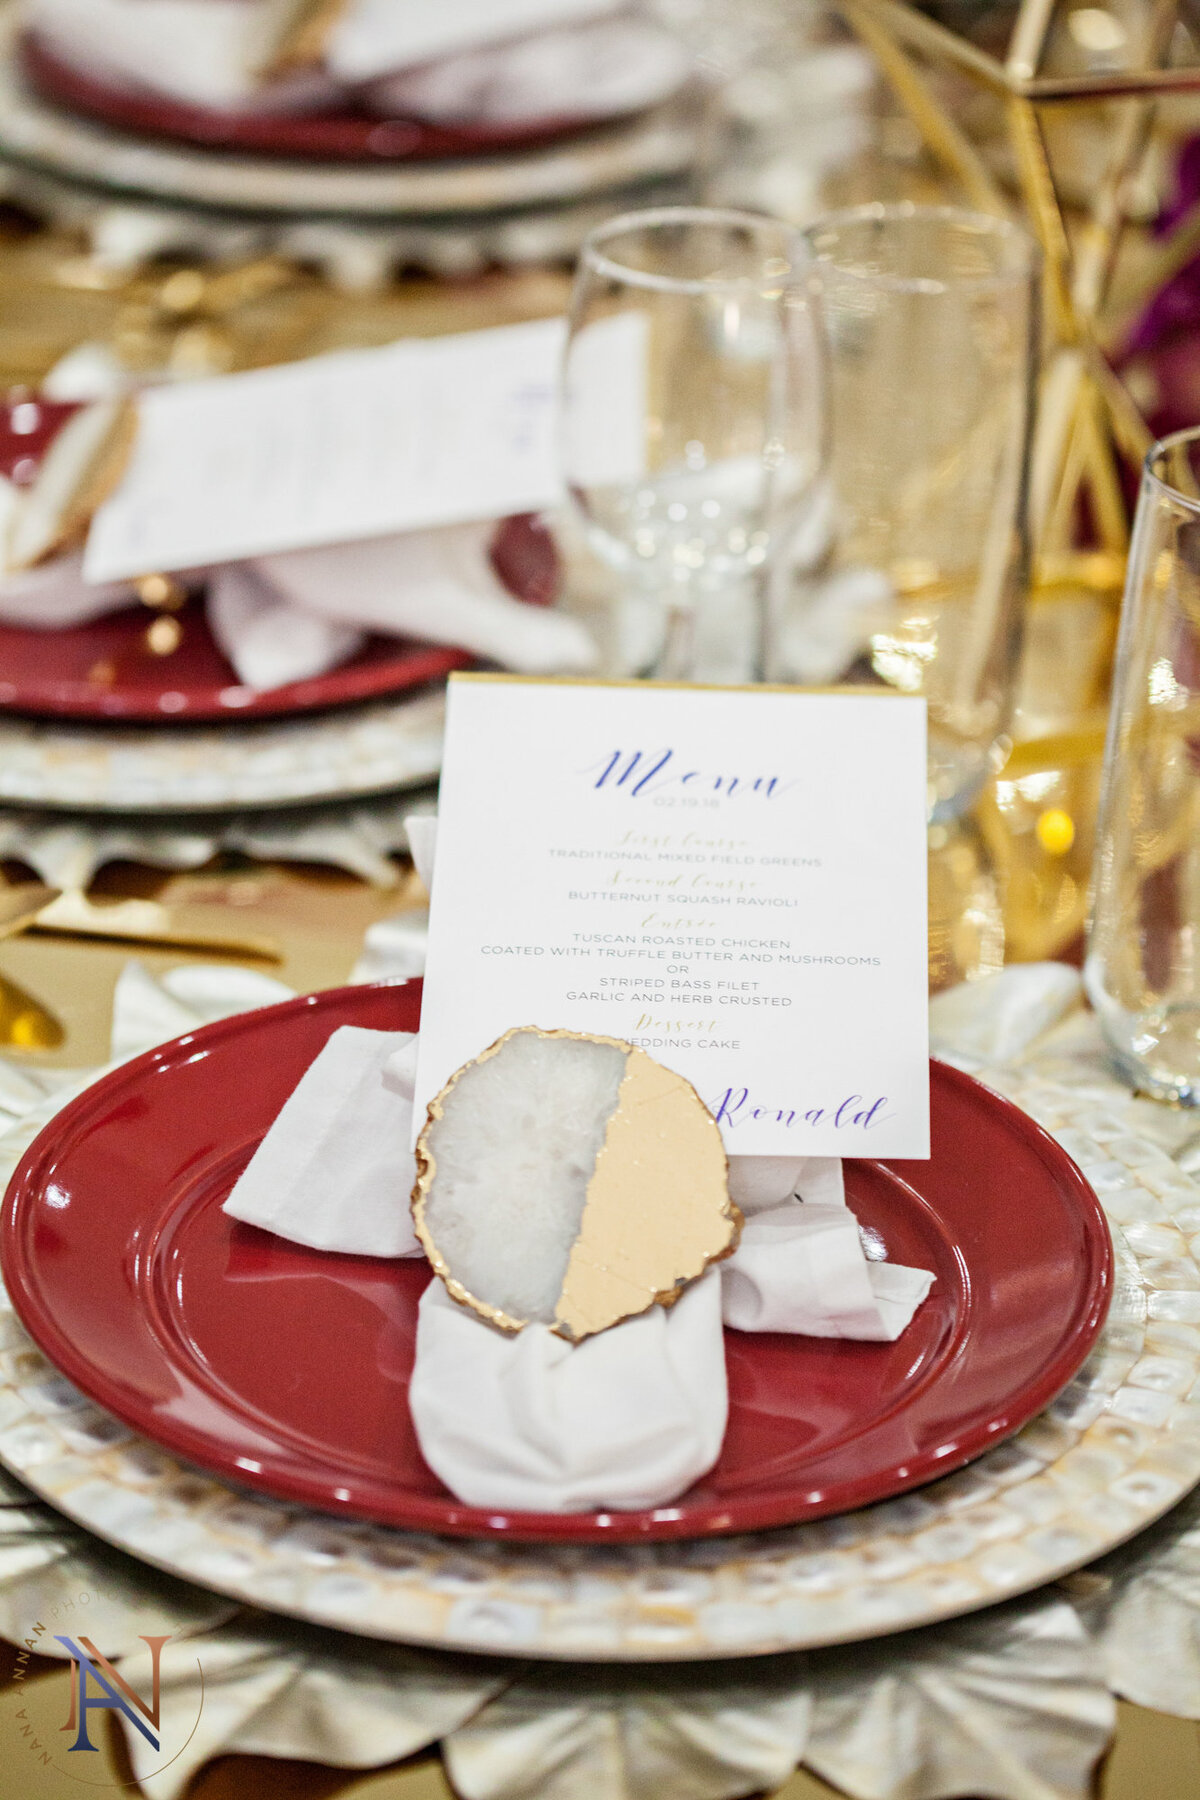 Bridget-Goldsmith-place-Setting